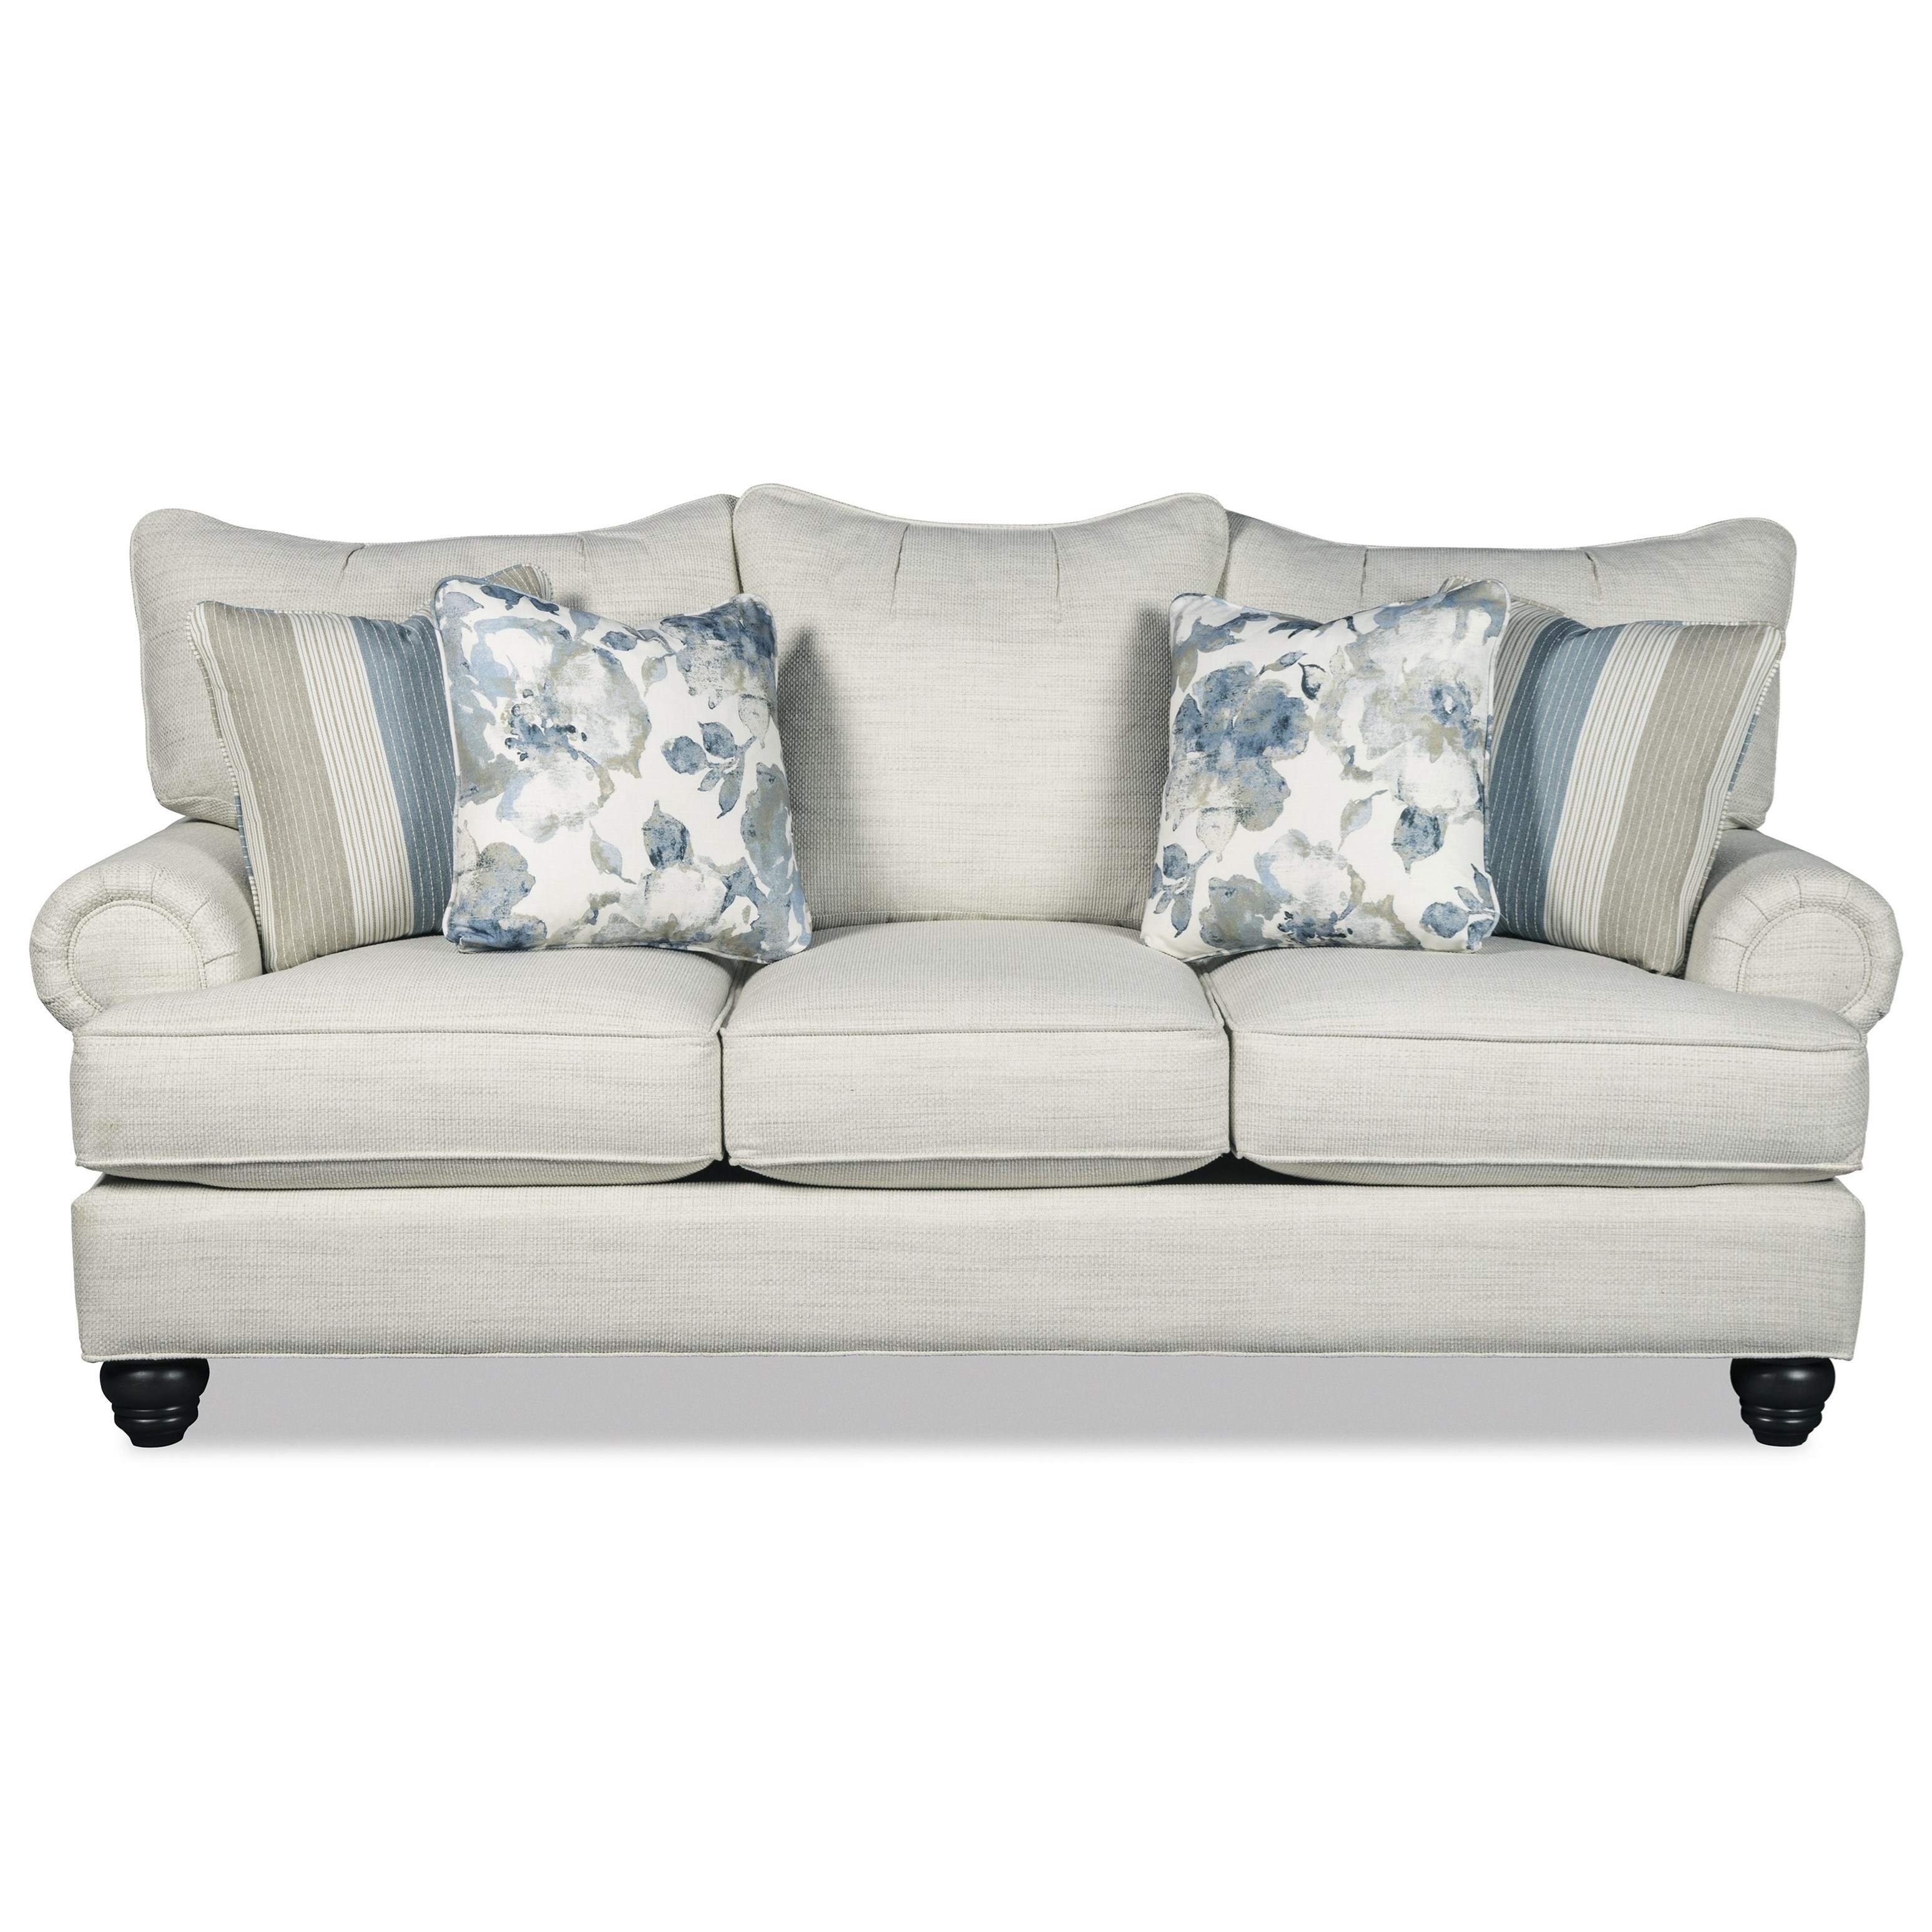 700450 Sofa by Craftmaster at Powell's Furniture and Mattress